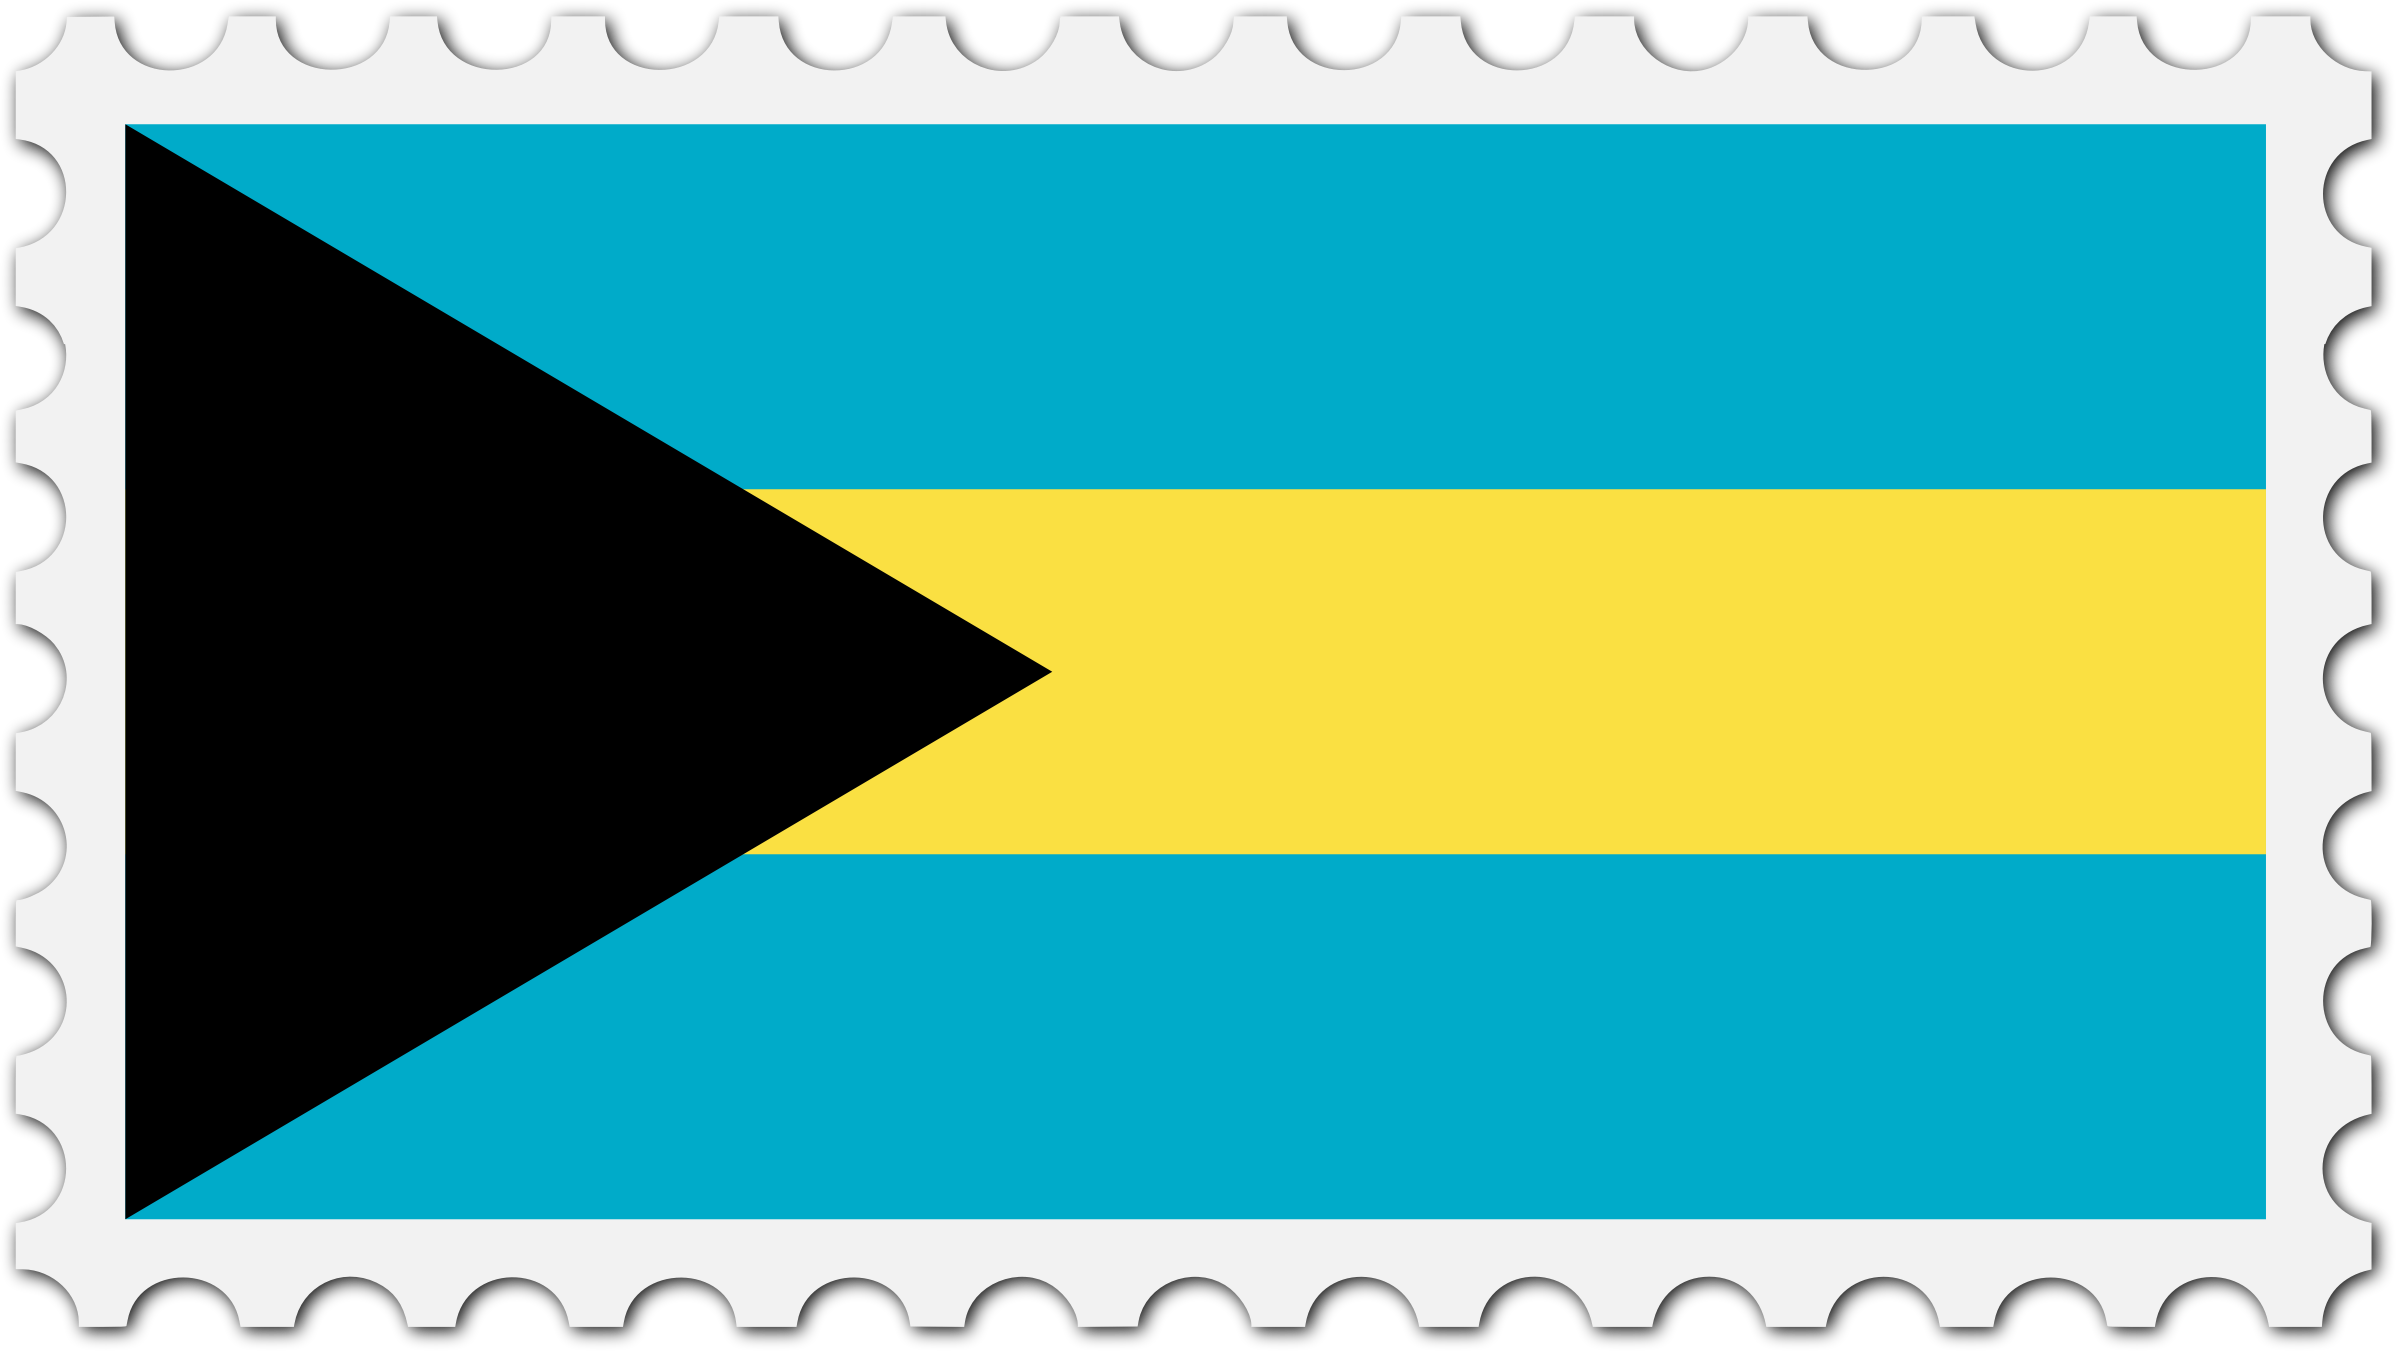 Bahamas flag stamp by Firkin